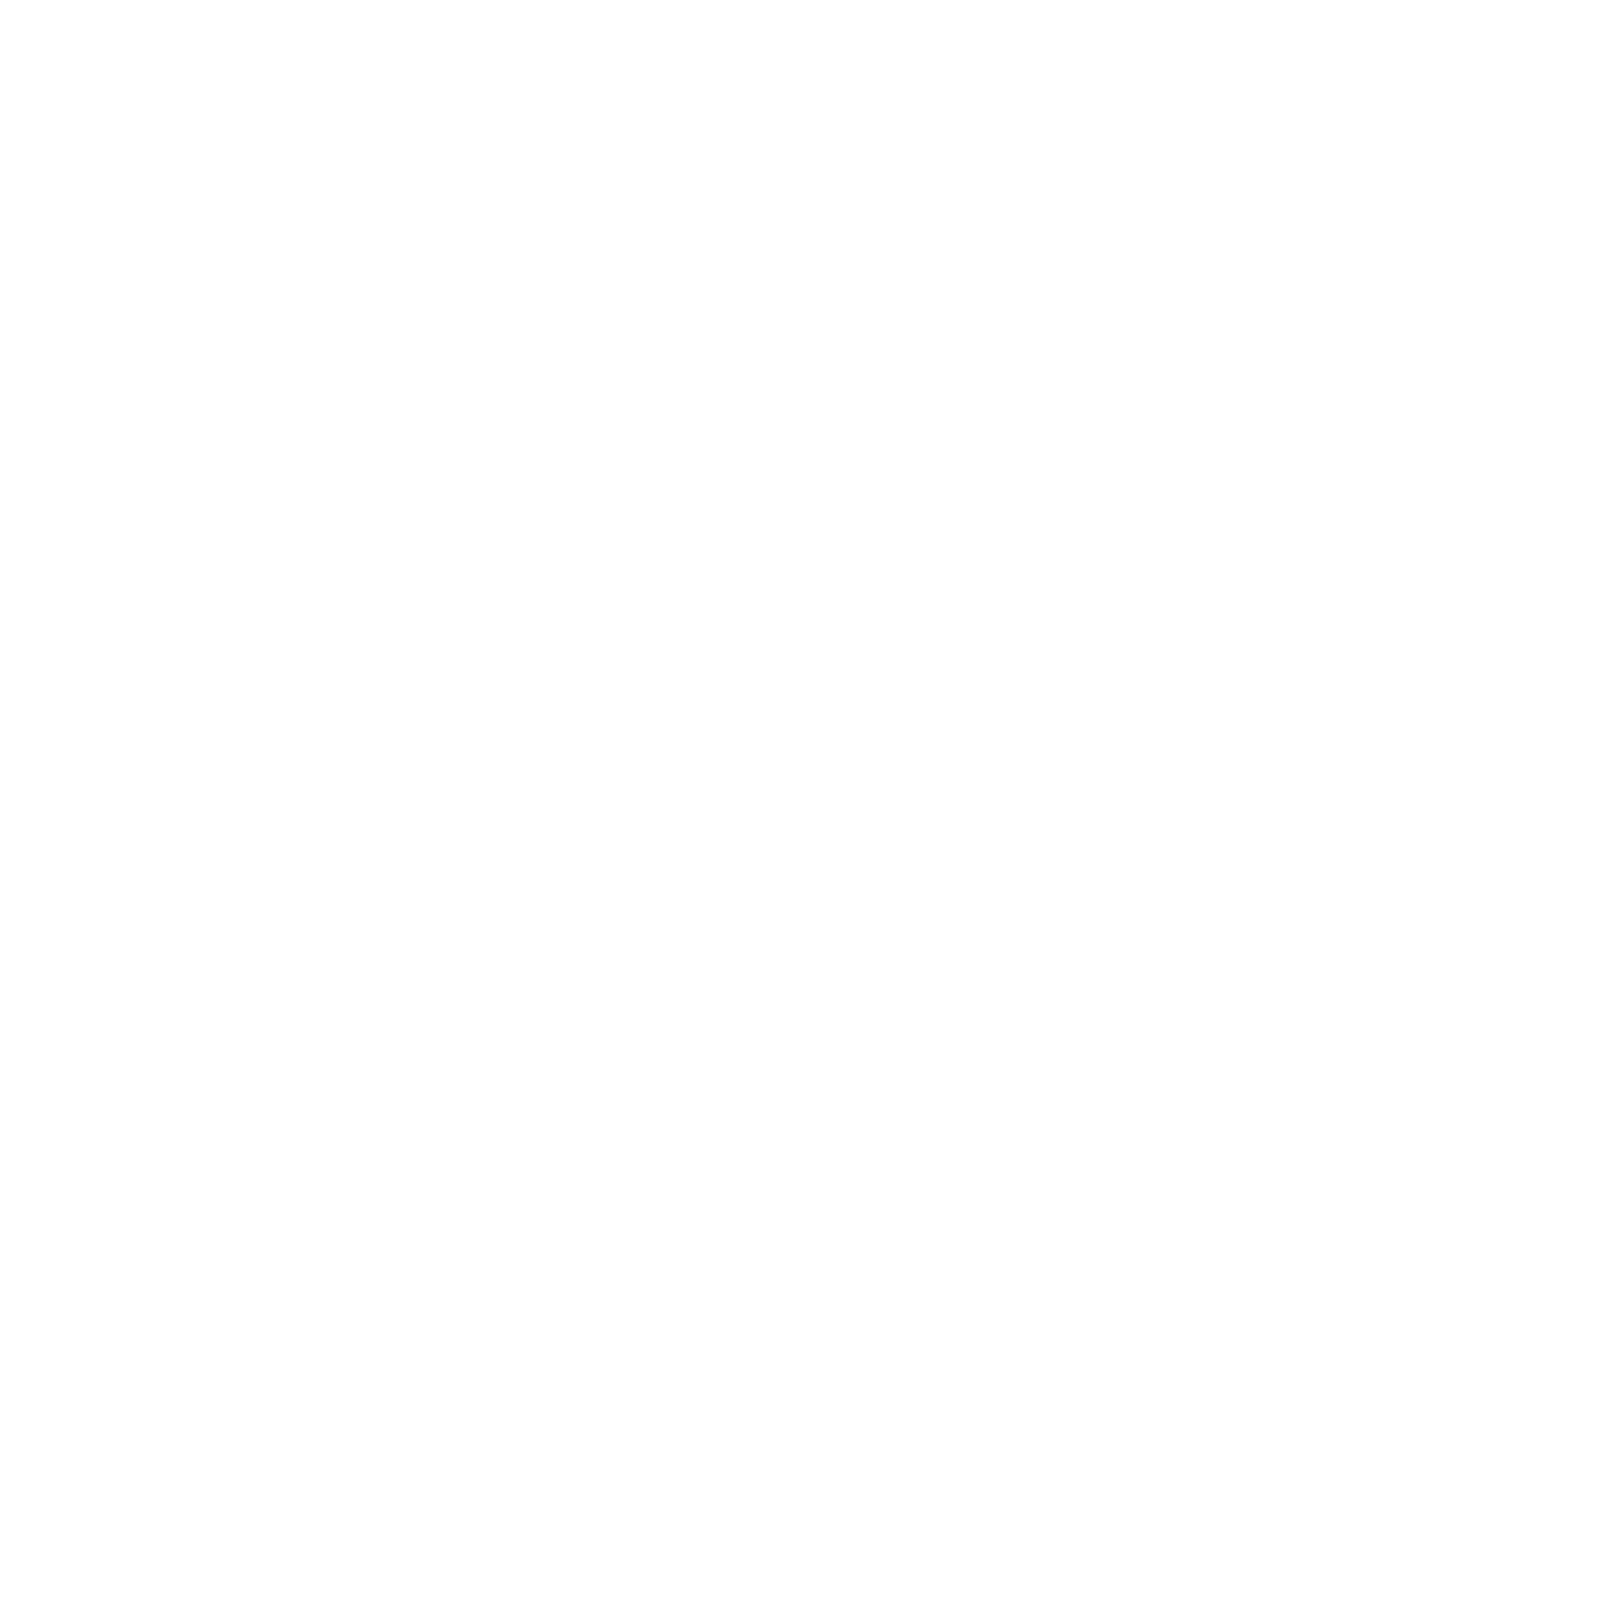 7IM-project-logo.png